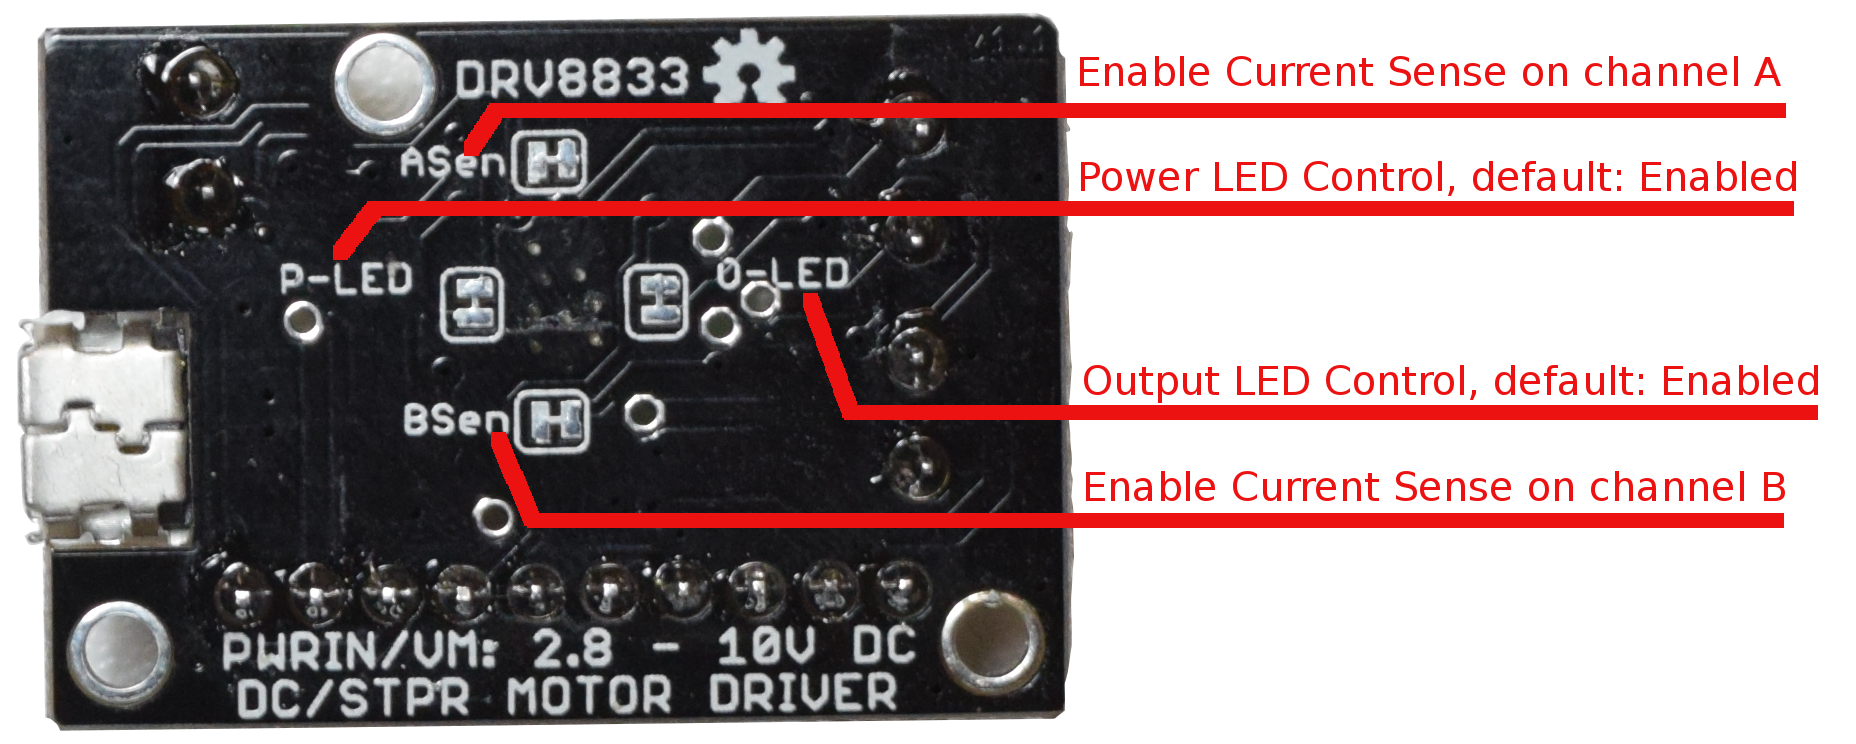 DRV8833 Current limiting feature